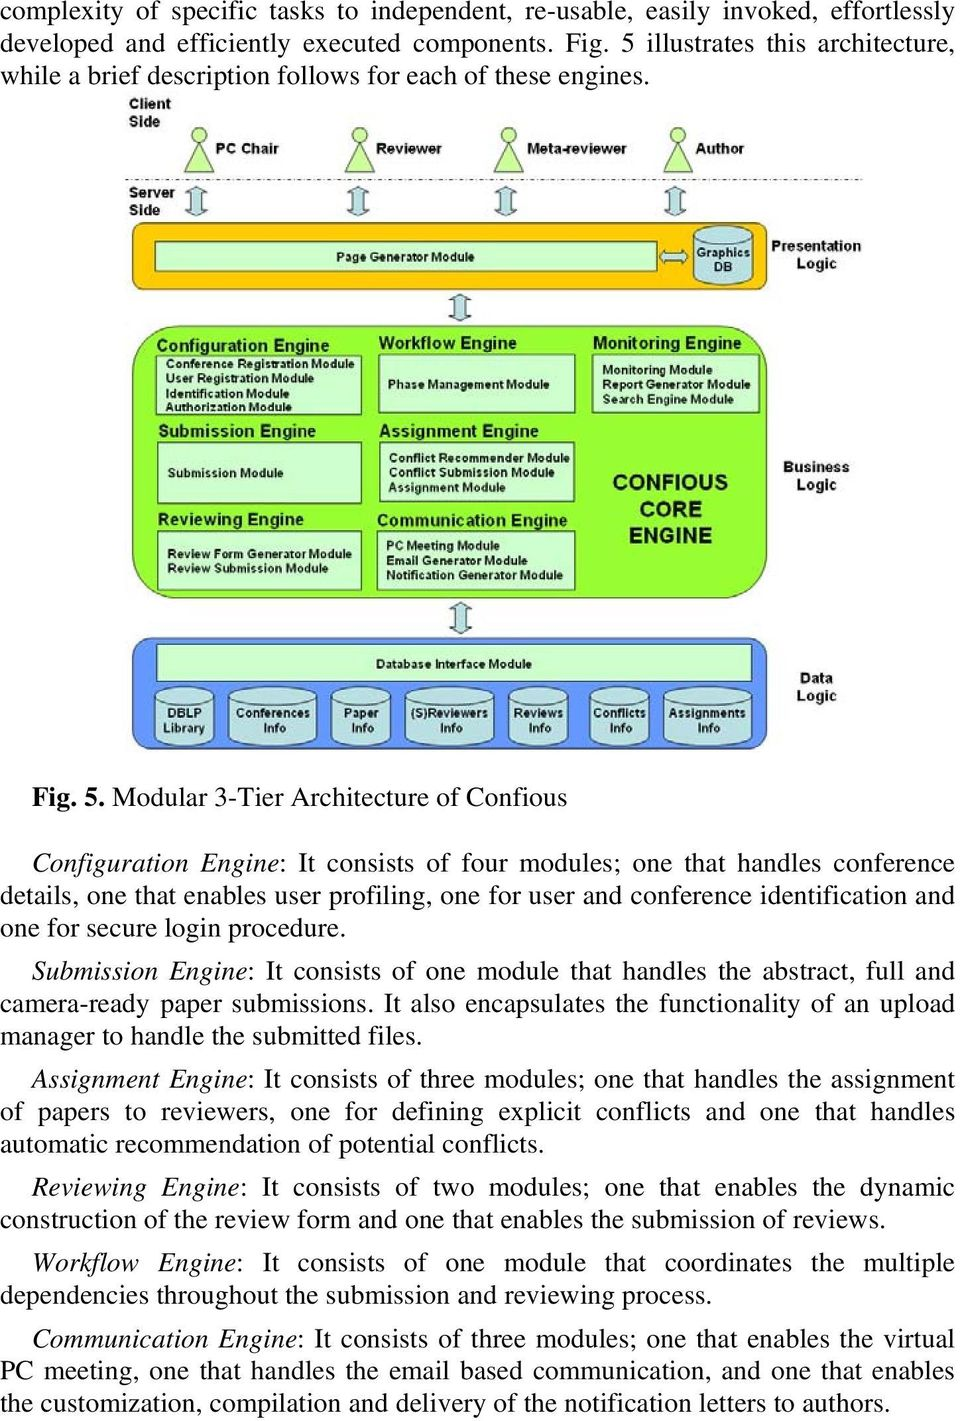 Modular 3-Tier Architecture of Confious Configuration Engine: It consists of four modules; one that handles conference details, one that enables user profiling, one for user and conference